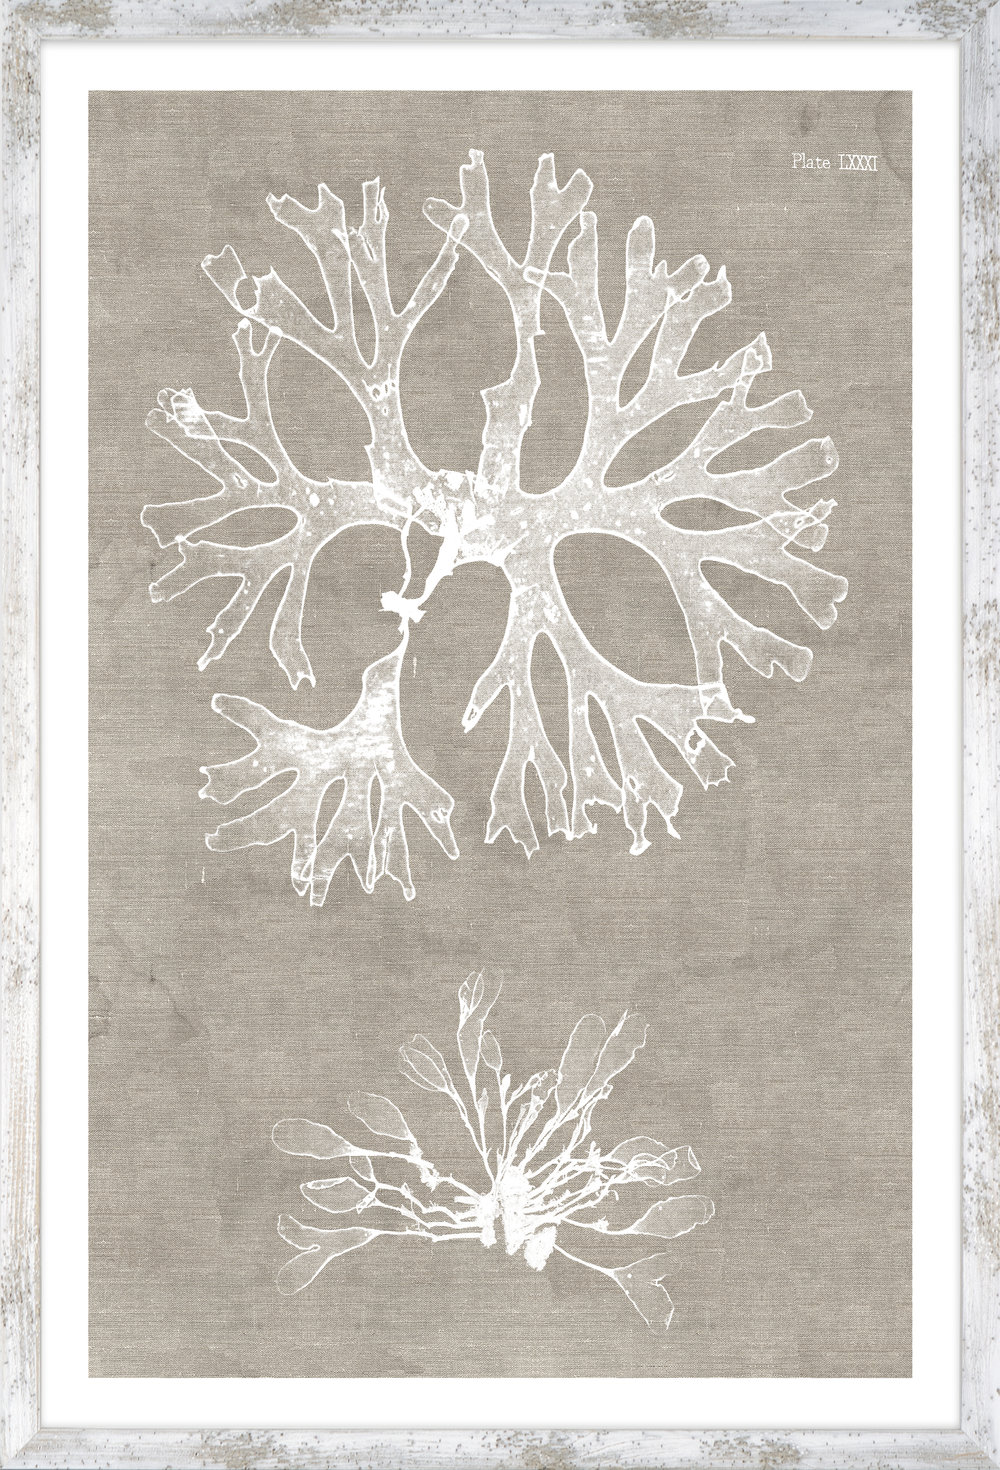 17611 Nature Printed on Linen II.jpg